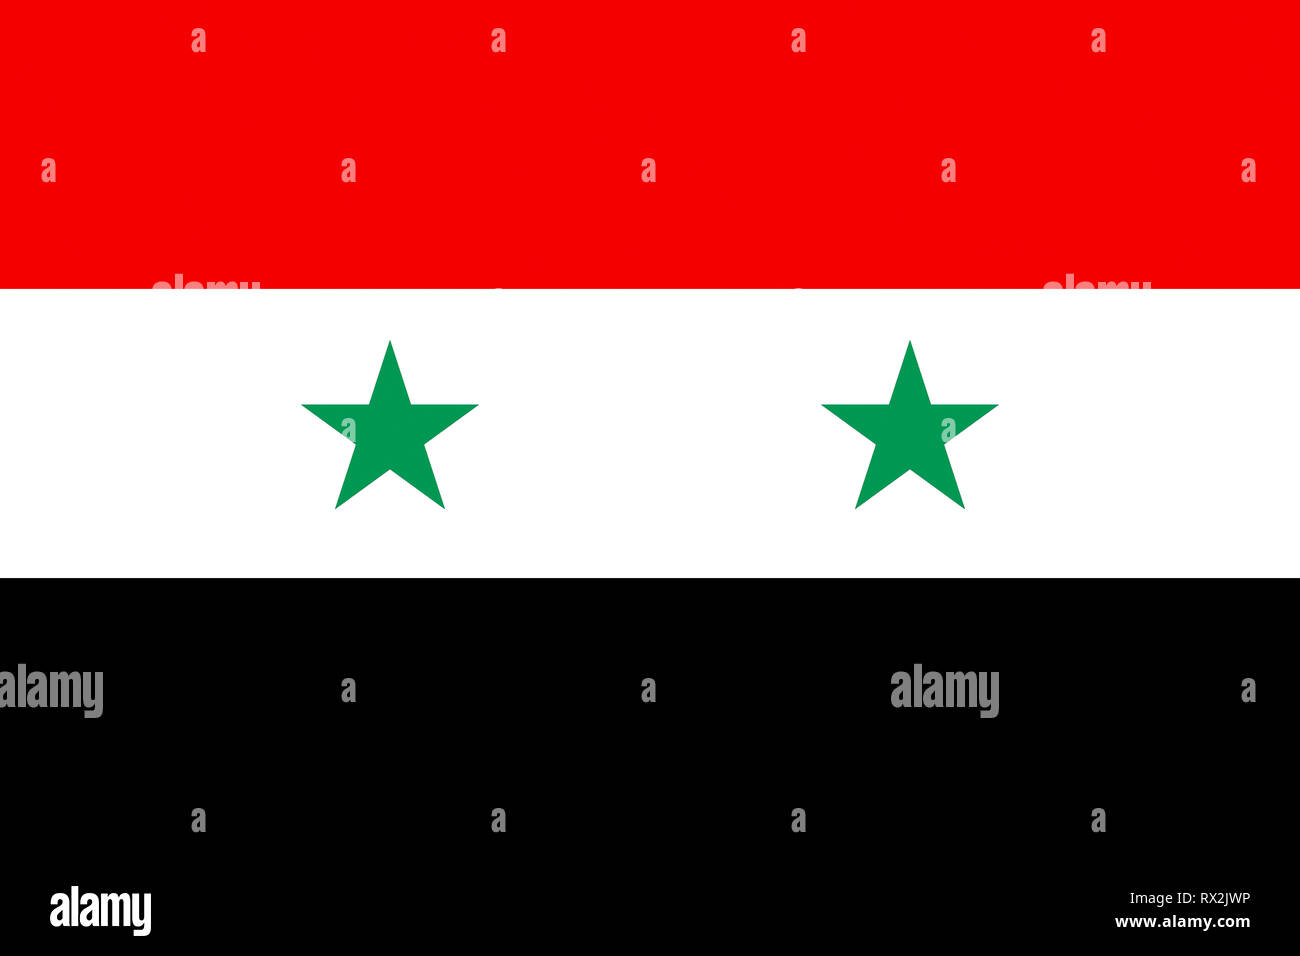 National flag of the Arabian Republic of Syria. - Stock Image